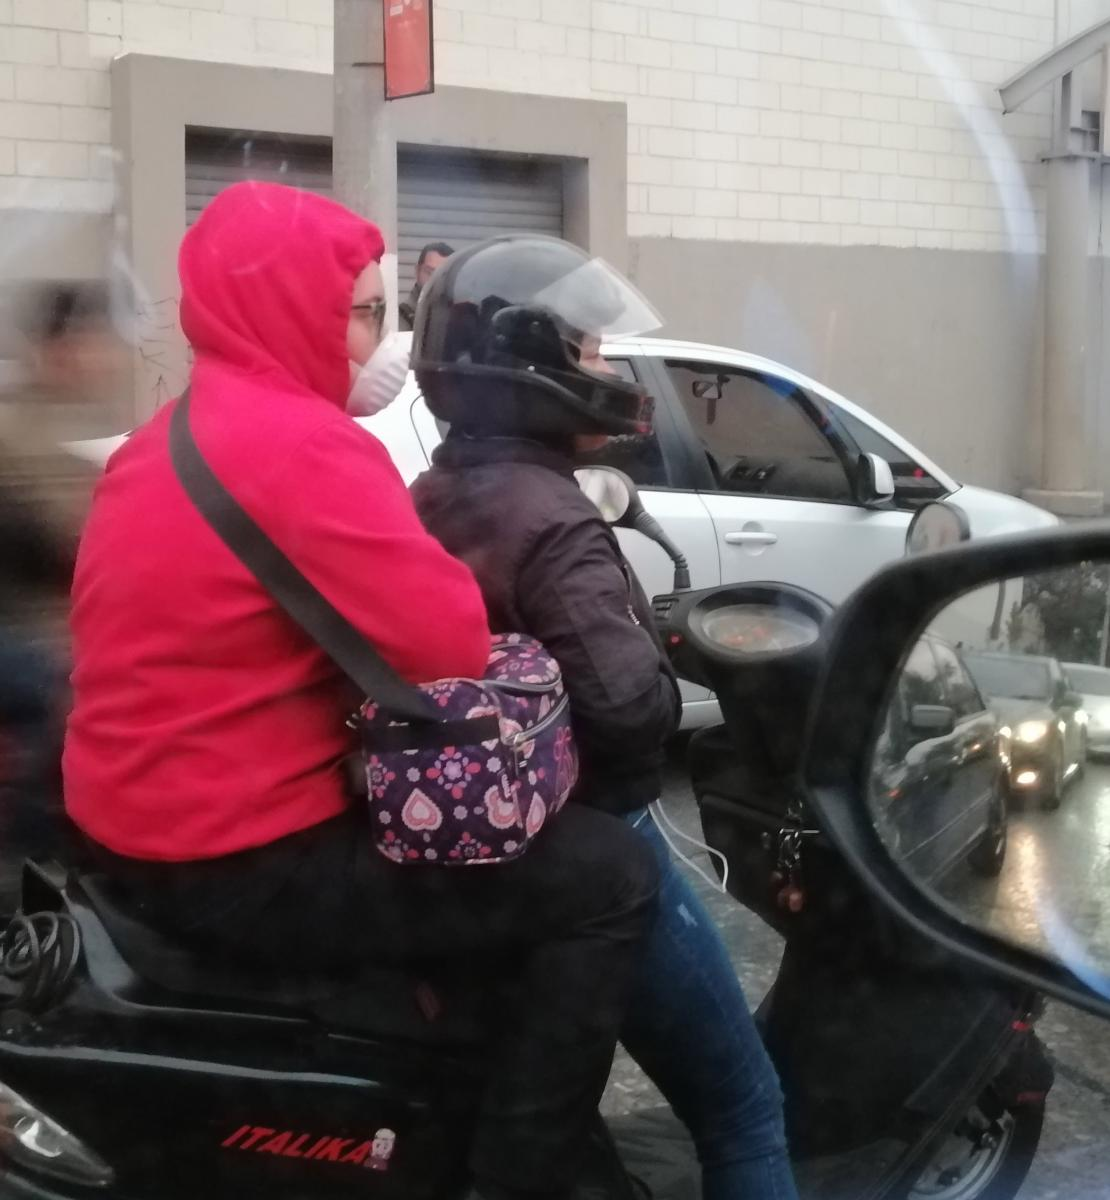 View of two people riding a motorbike wearing protective masks.